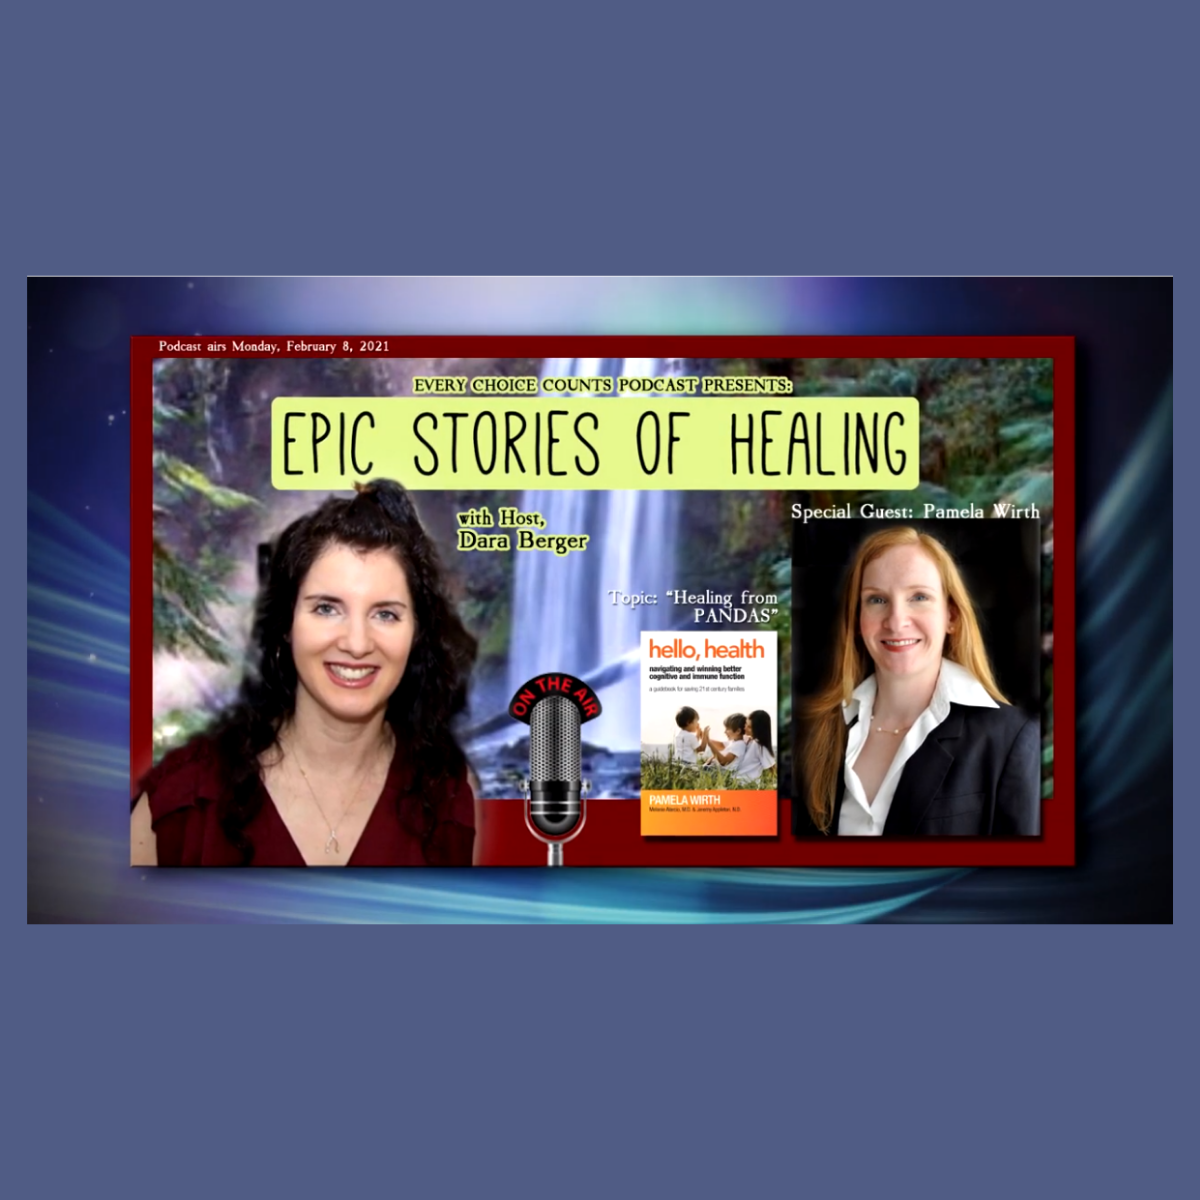 Healing From PANDAS - Dara Berger and Special Guest Pamela Wirth